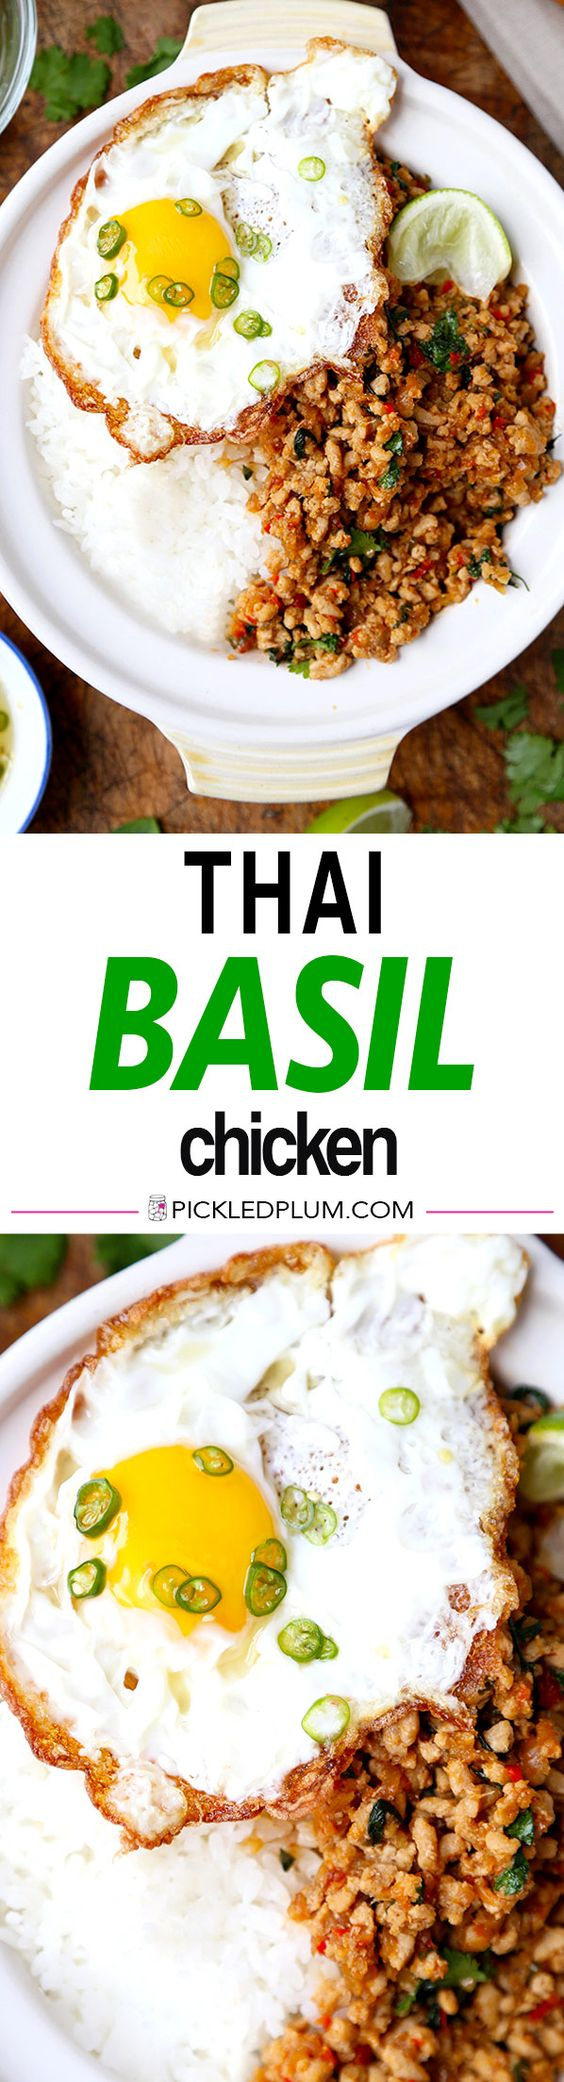 Thai Basil Chicken - This easy Thai basil chicken recipe is based on the classic Thai Krapow Gai Kai Dow dish. Its hot, pungent, salty and smoky. Squeeze a little fresh lime juice on top and your taste buds will be dancing in no time! Easy, Thai, recipe, chicken | pickledplum.com